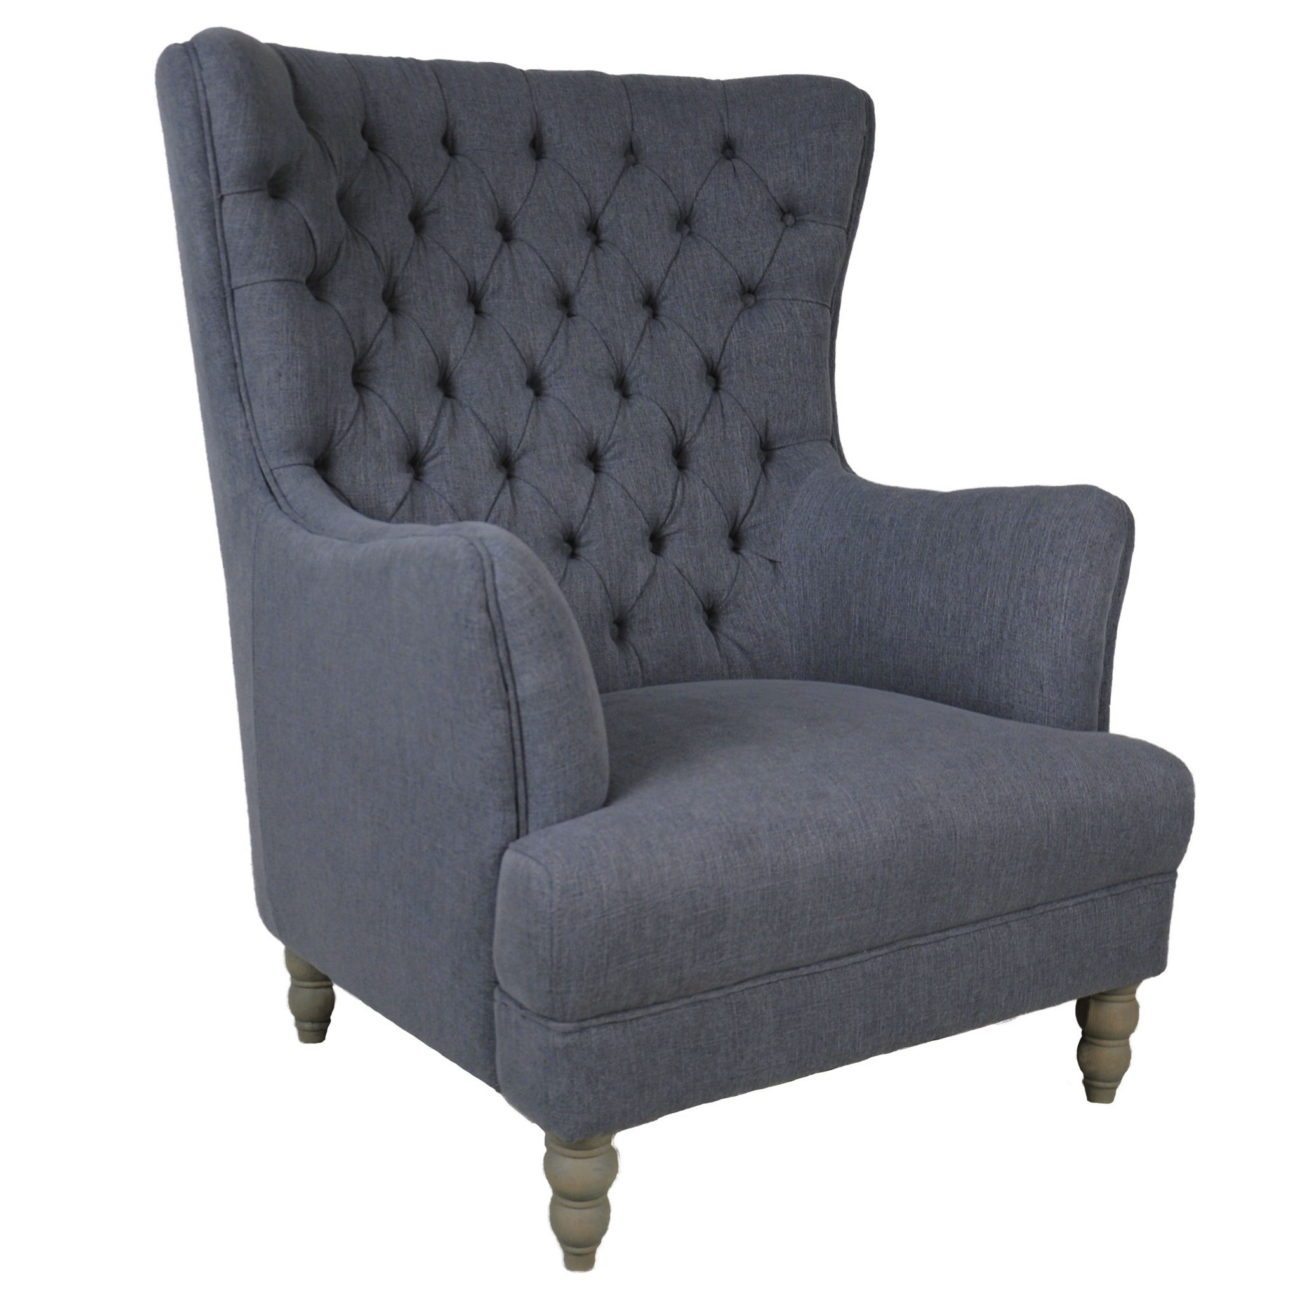 Delicieux Stockwell Button Tufted Oversized Wing Back Club Chair.